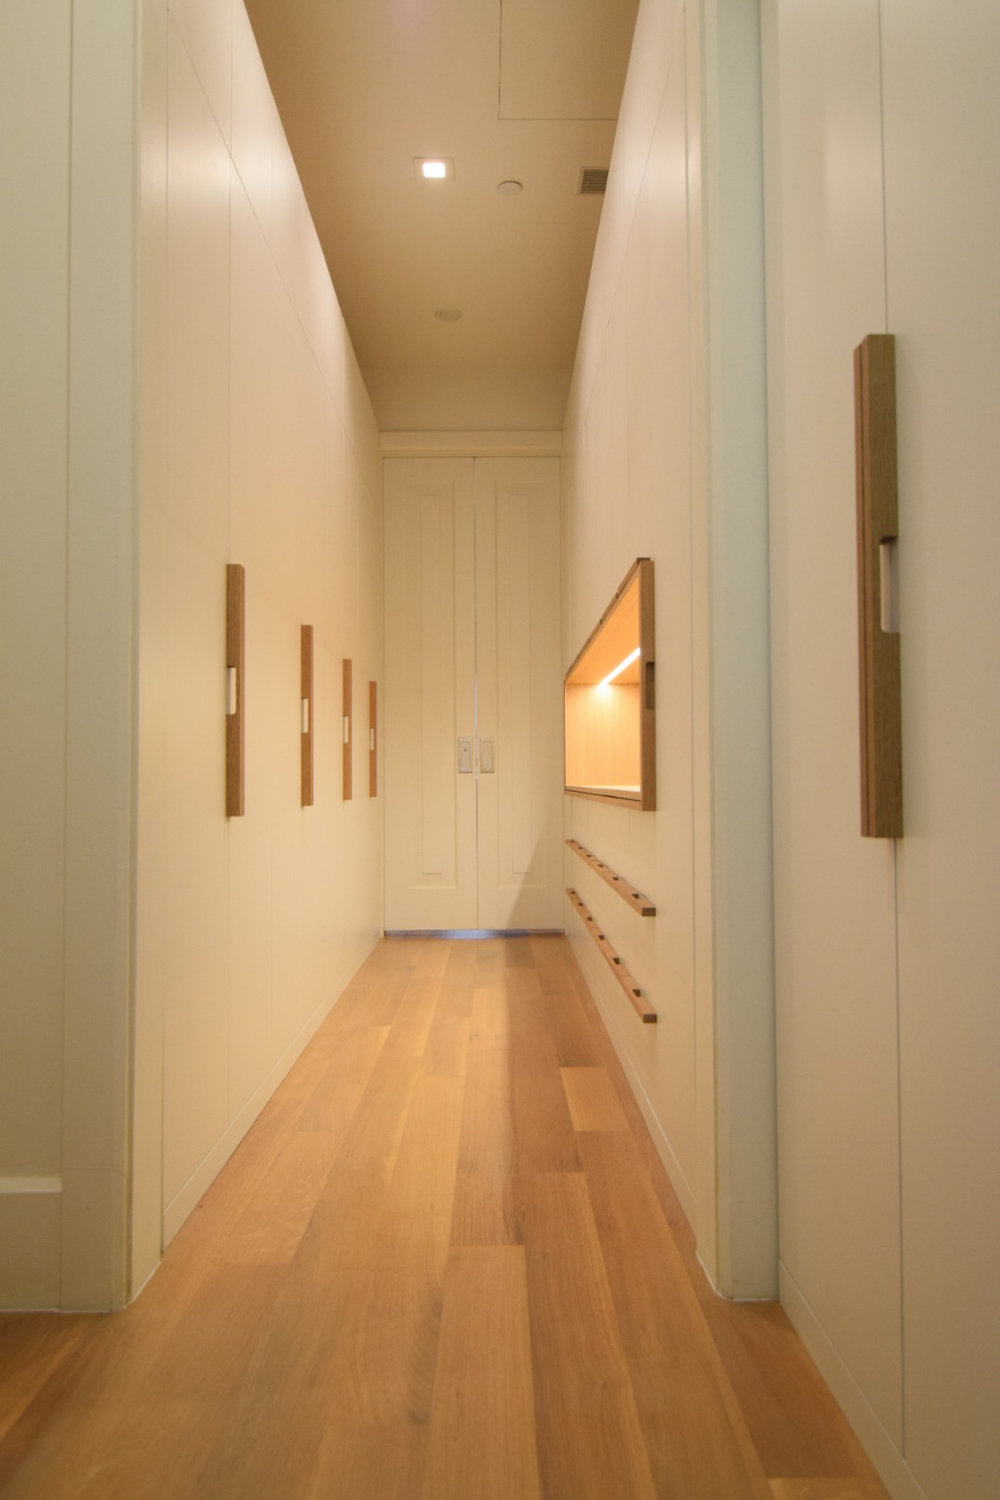 custom-walk-in-closet-white-lacquer-finish-maple-interior-white-oak-handles-white-oak-accent-open-display-cabinet-portrait-view.jpg